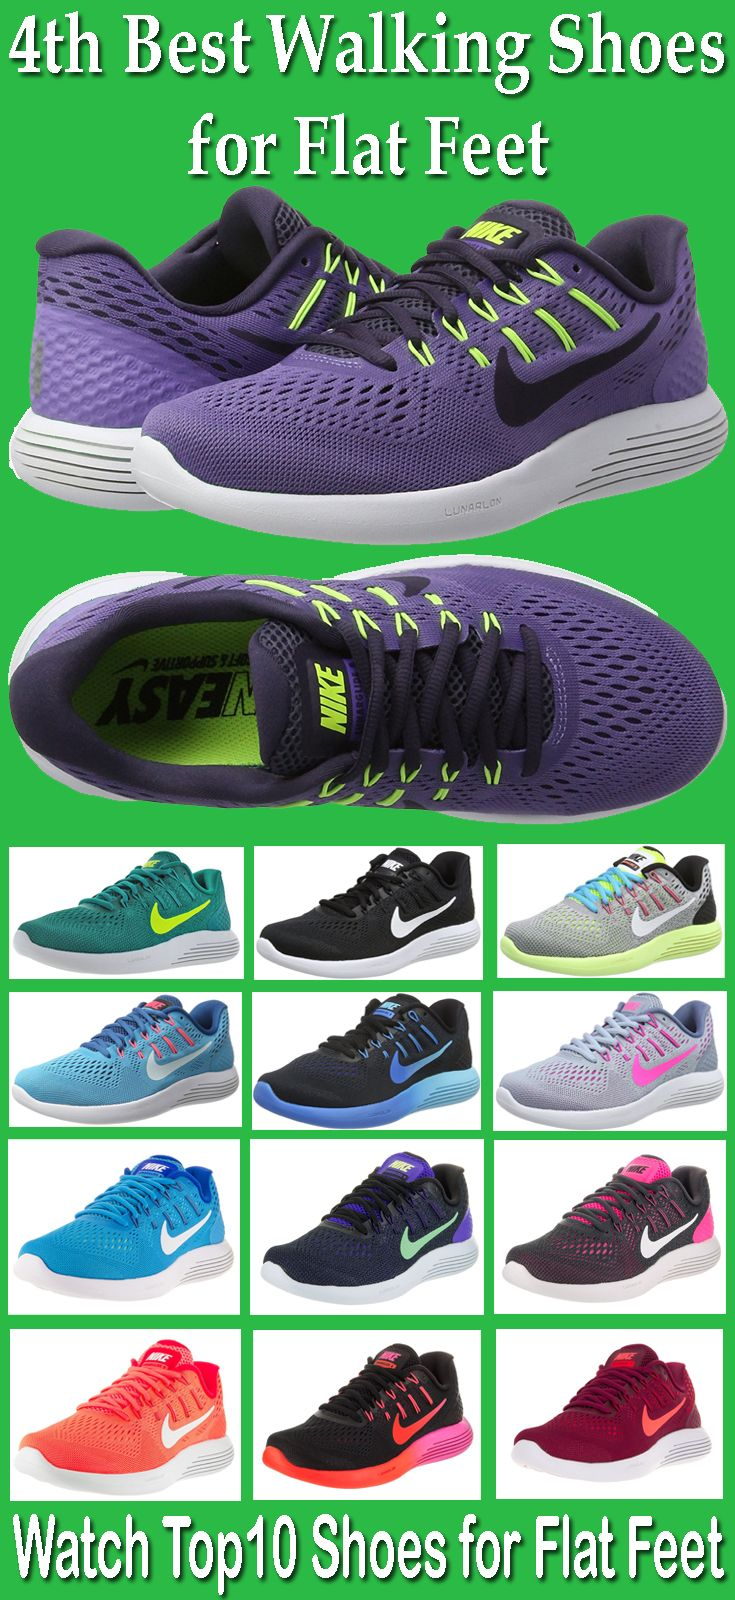 cb08384c29 Nike Lunarglide 8 is one of the best walking shoes for flat feet ...